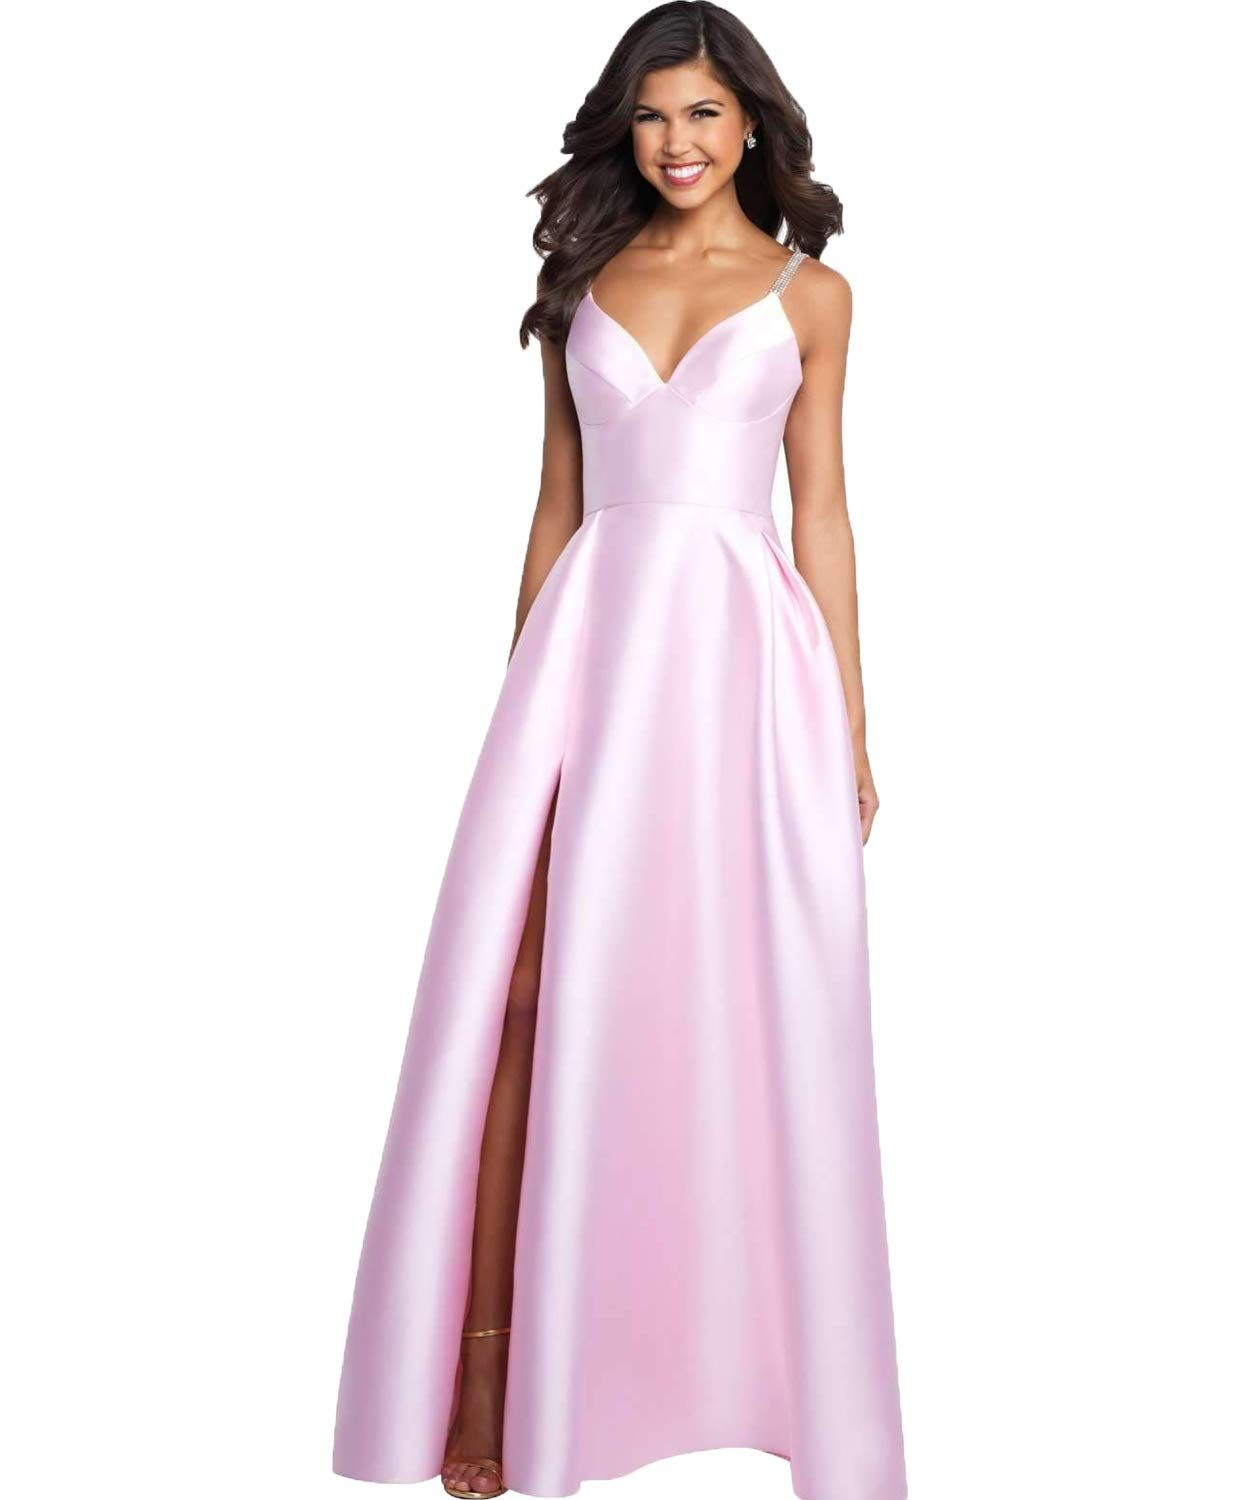 766d6e75b18d YGSY Women's Deep V Neck Spaghetti Straps Beaded Slit Satin A-line Evening  Prom Dress Long Formal Party Gown with Pockets